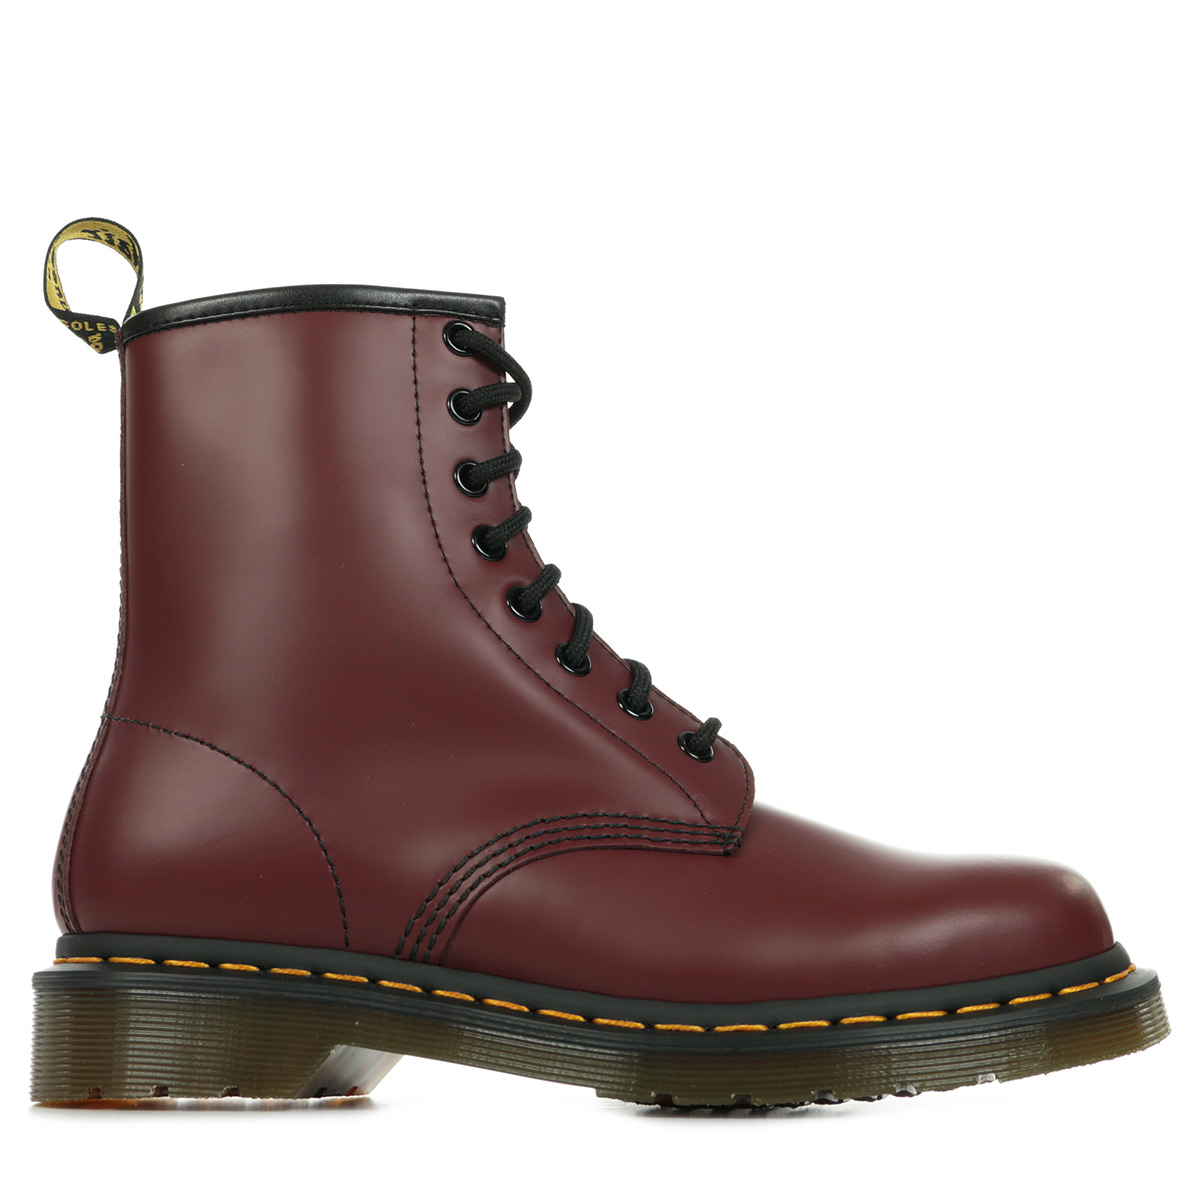 c72a258e9af Dr. Martens 1460 Cherry Red Smooth 11822600